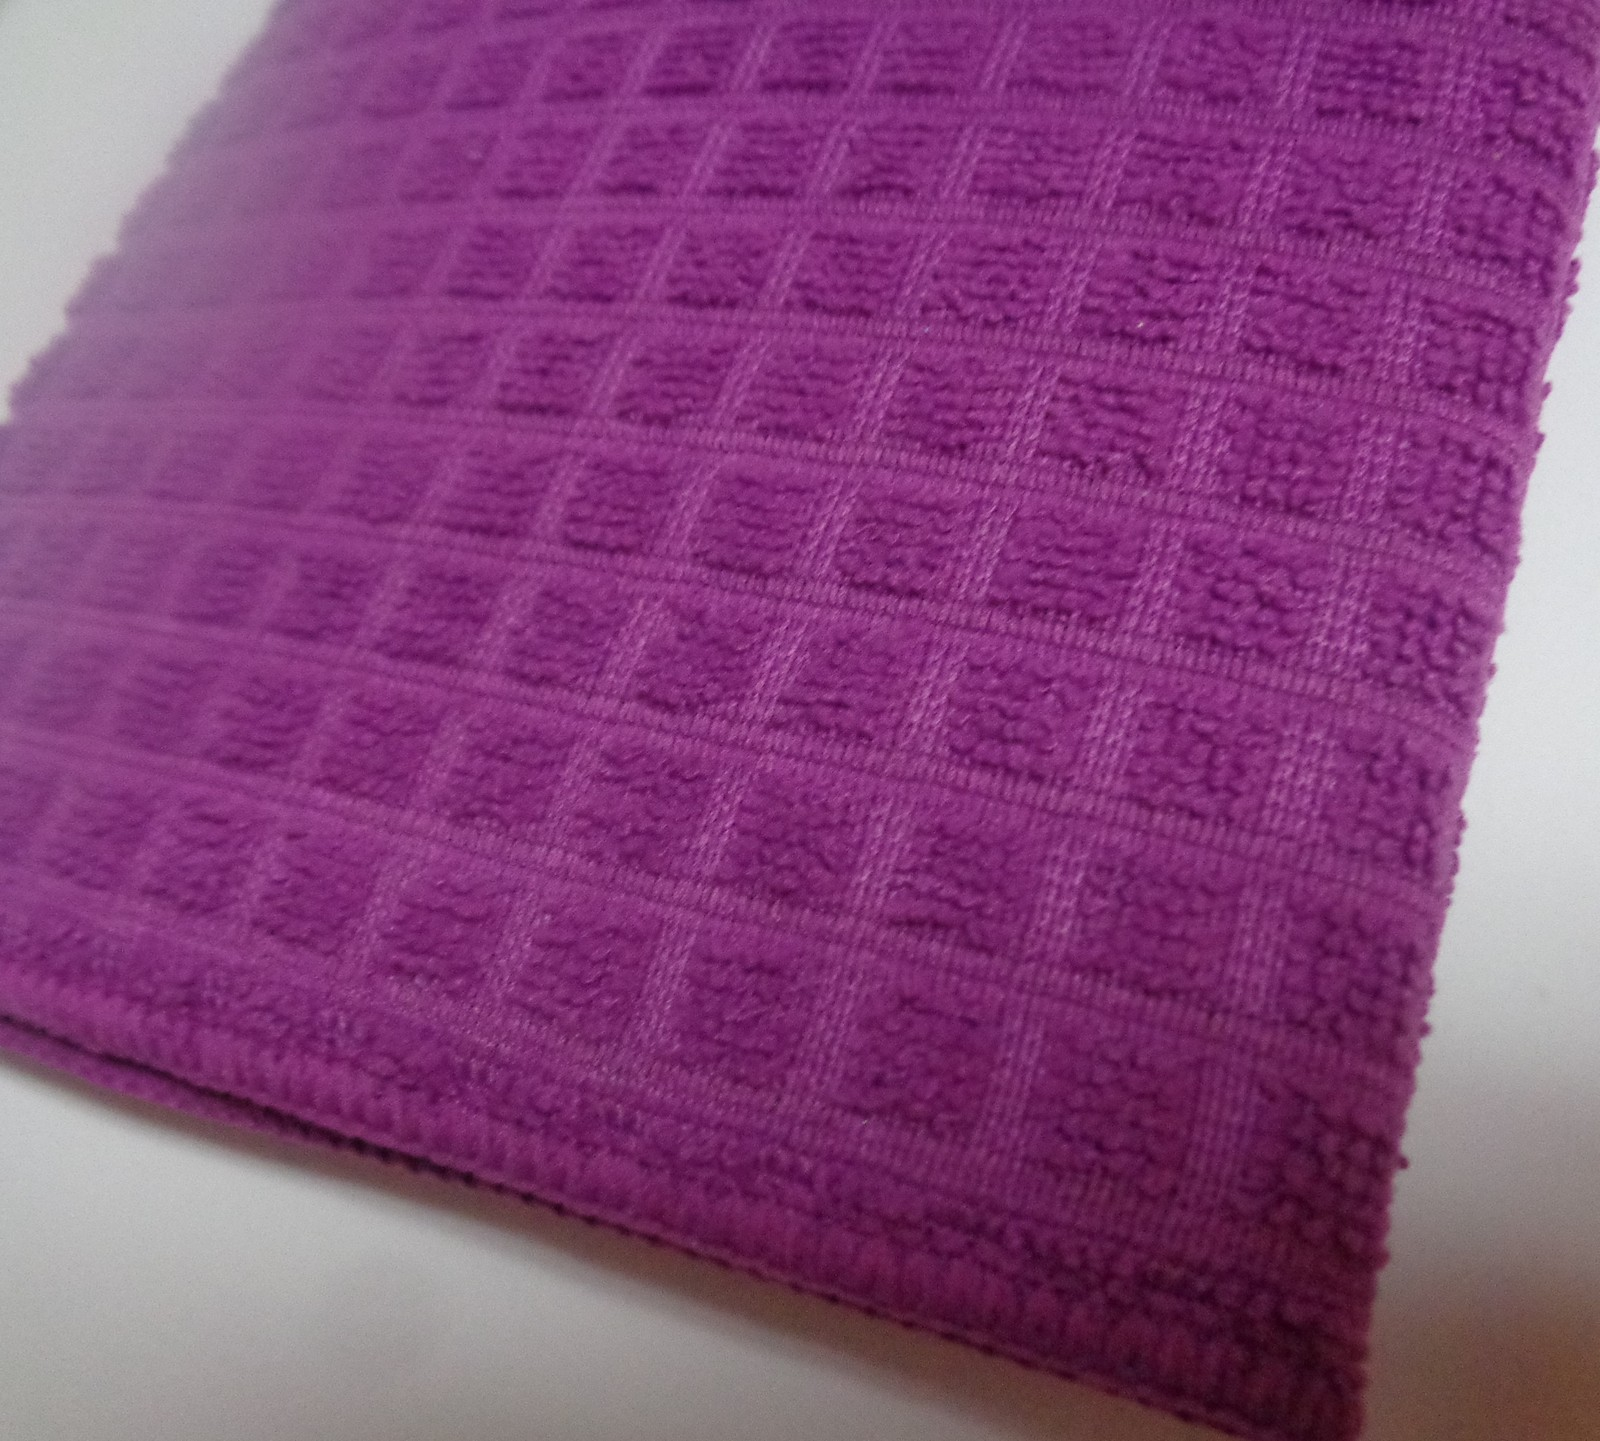 Dish Drying Mat Microfiber Absorbent Machine Washable Fast Drying Purple NWT 15""